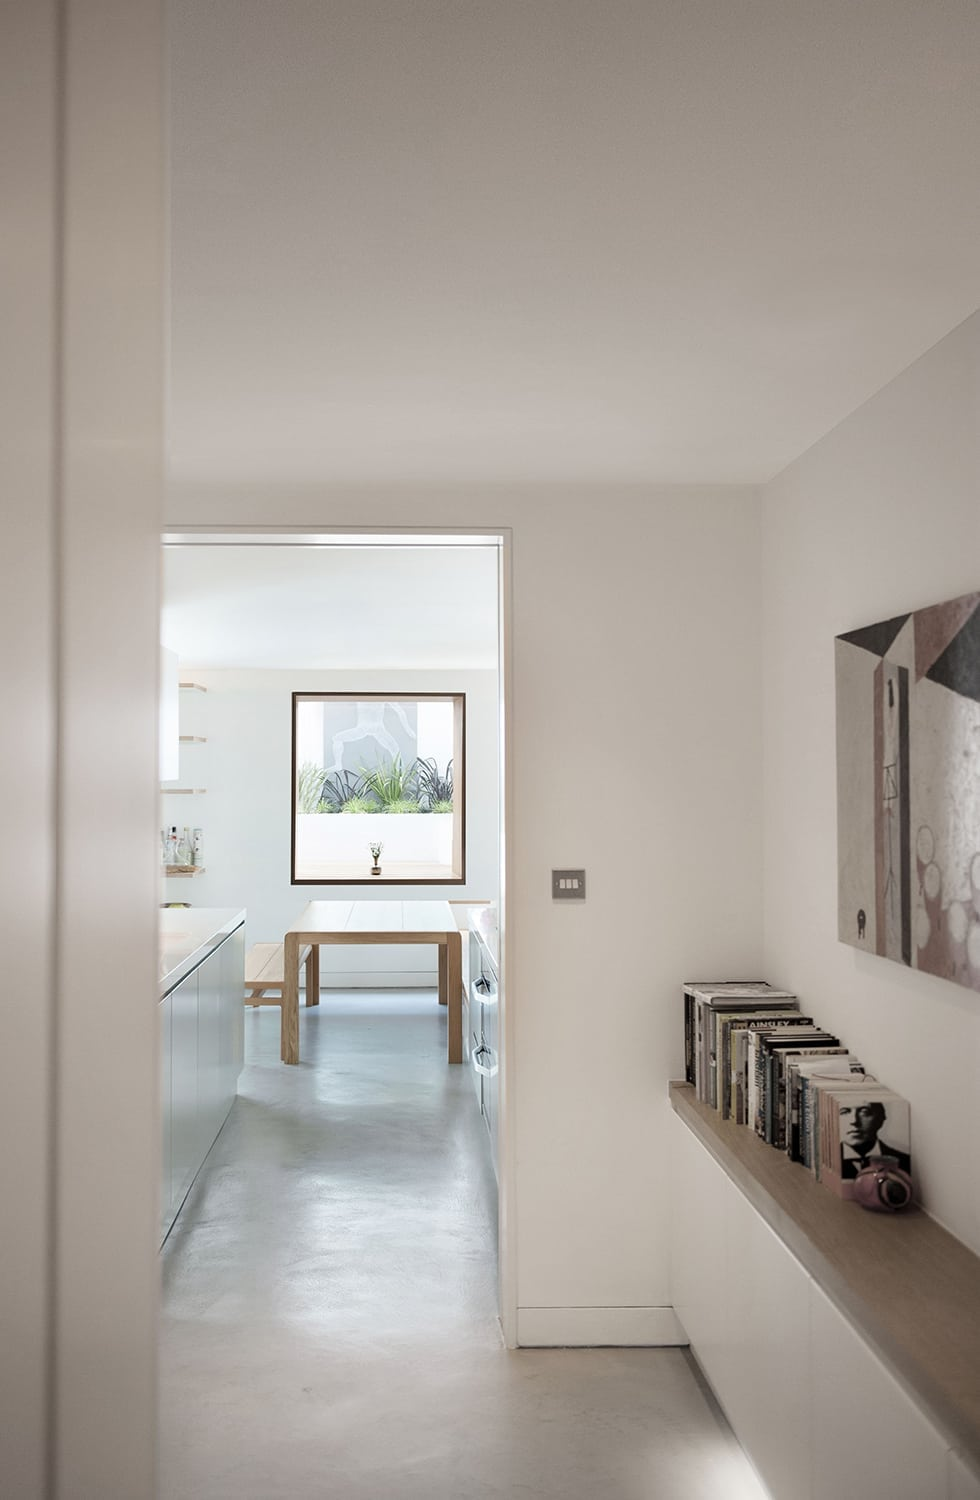 Notting Hill - Westbourne Grove garden flat extension crittall concrete floor skylight